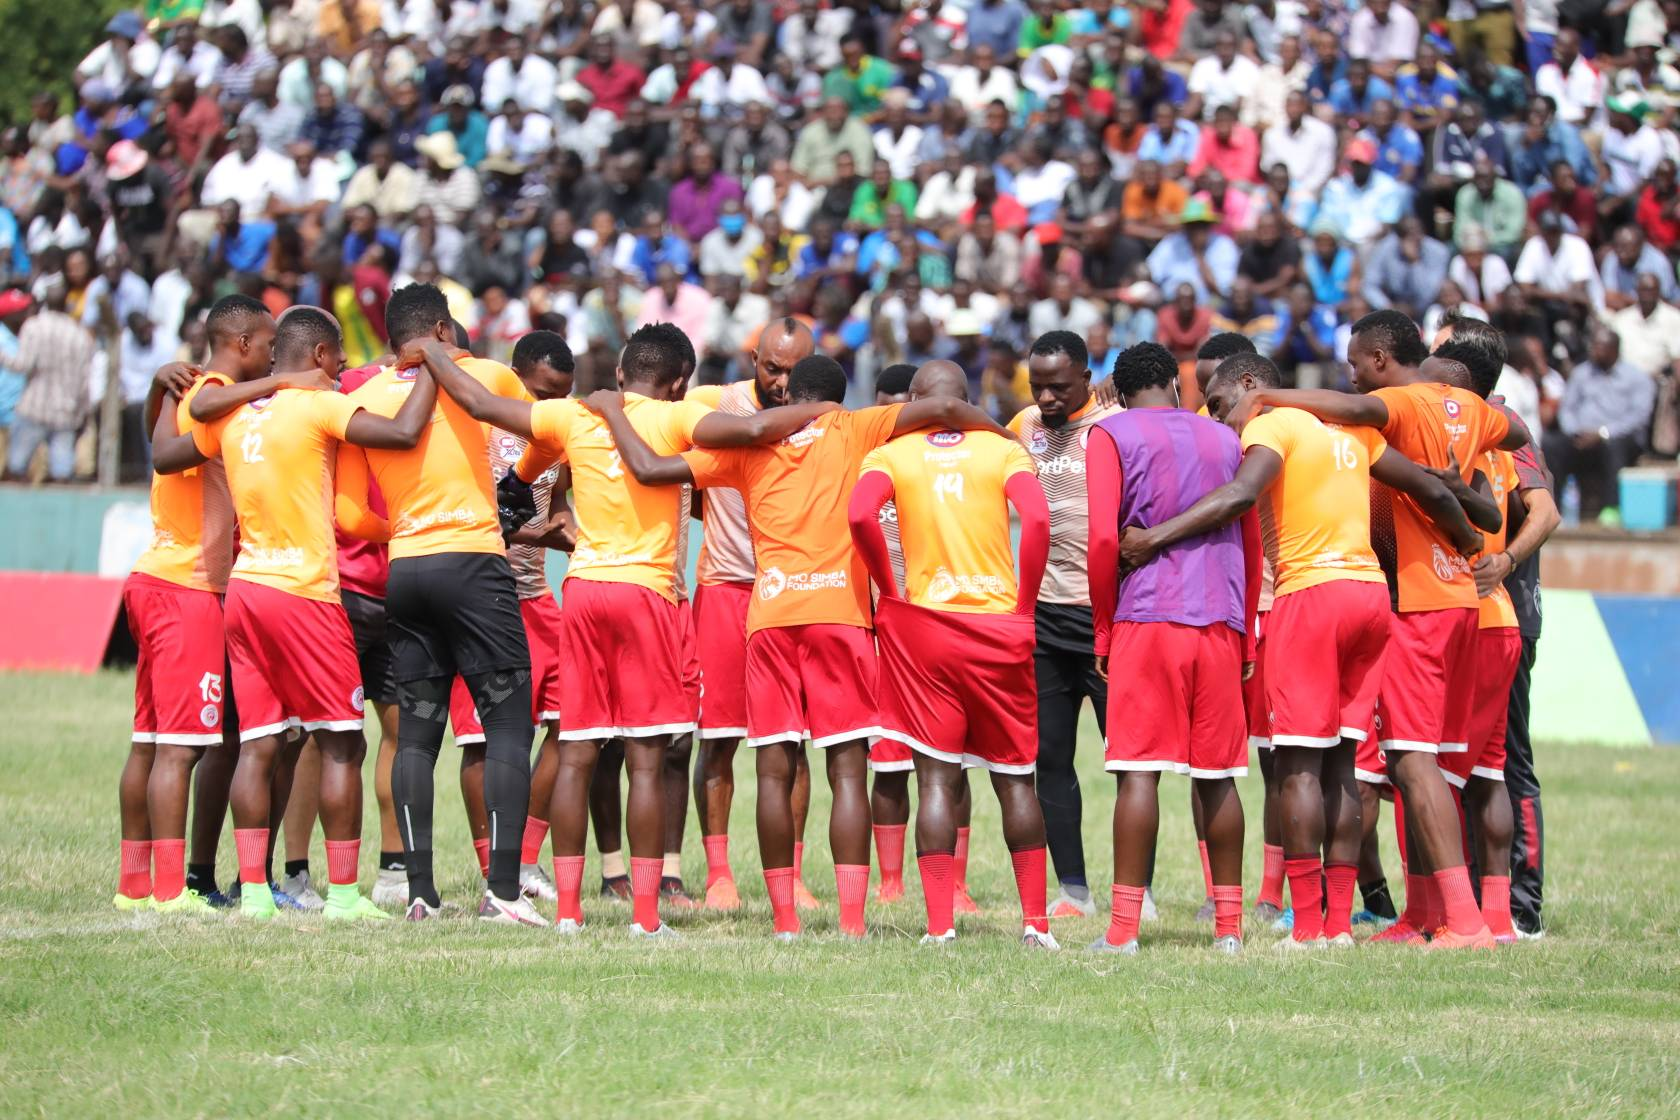 """Simba fans to observe Covid measures during """"Total War"""" clash against Al Ahly"""